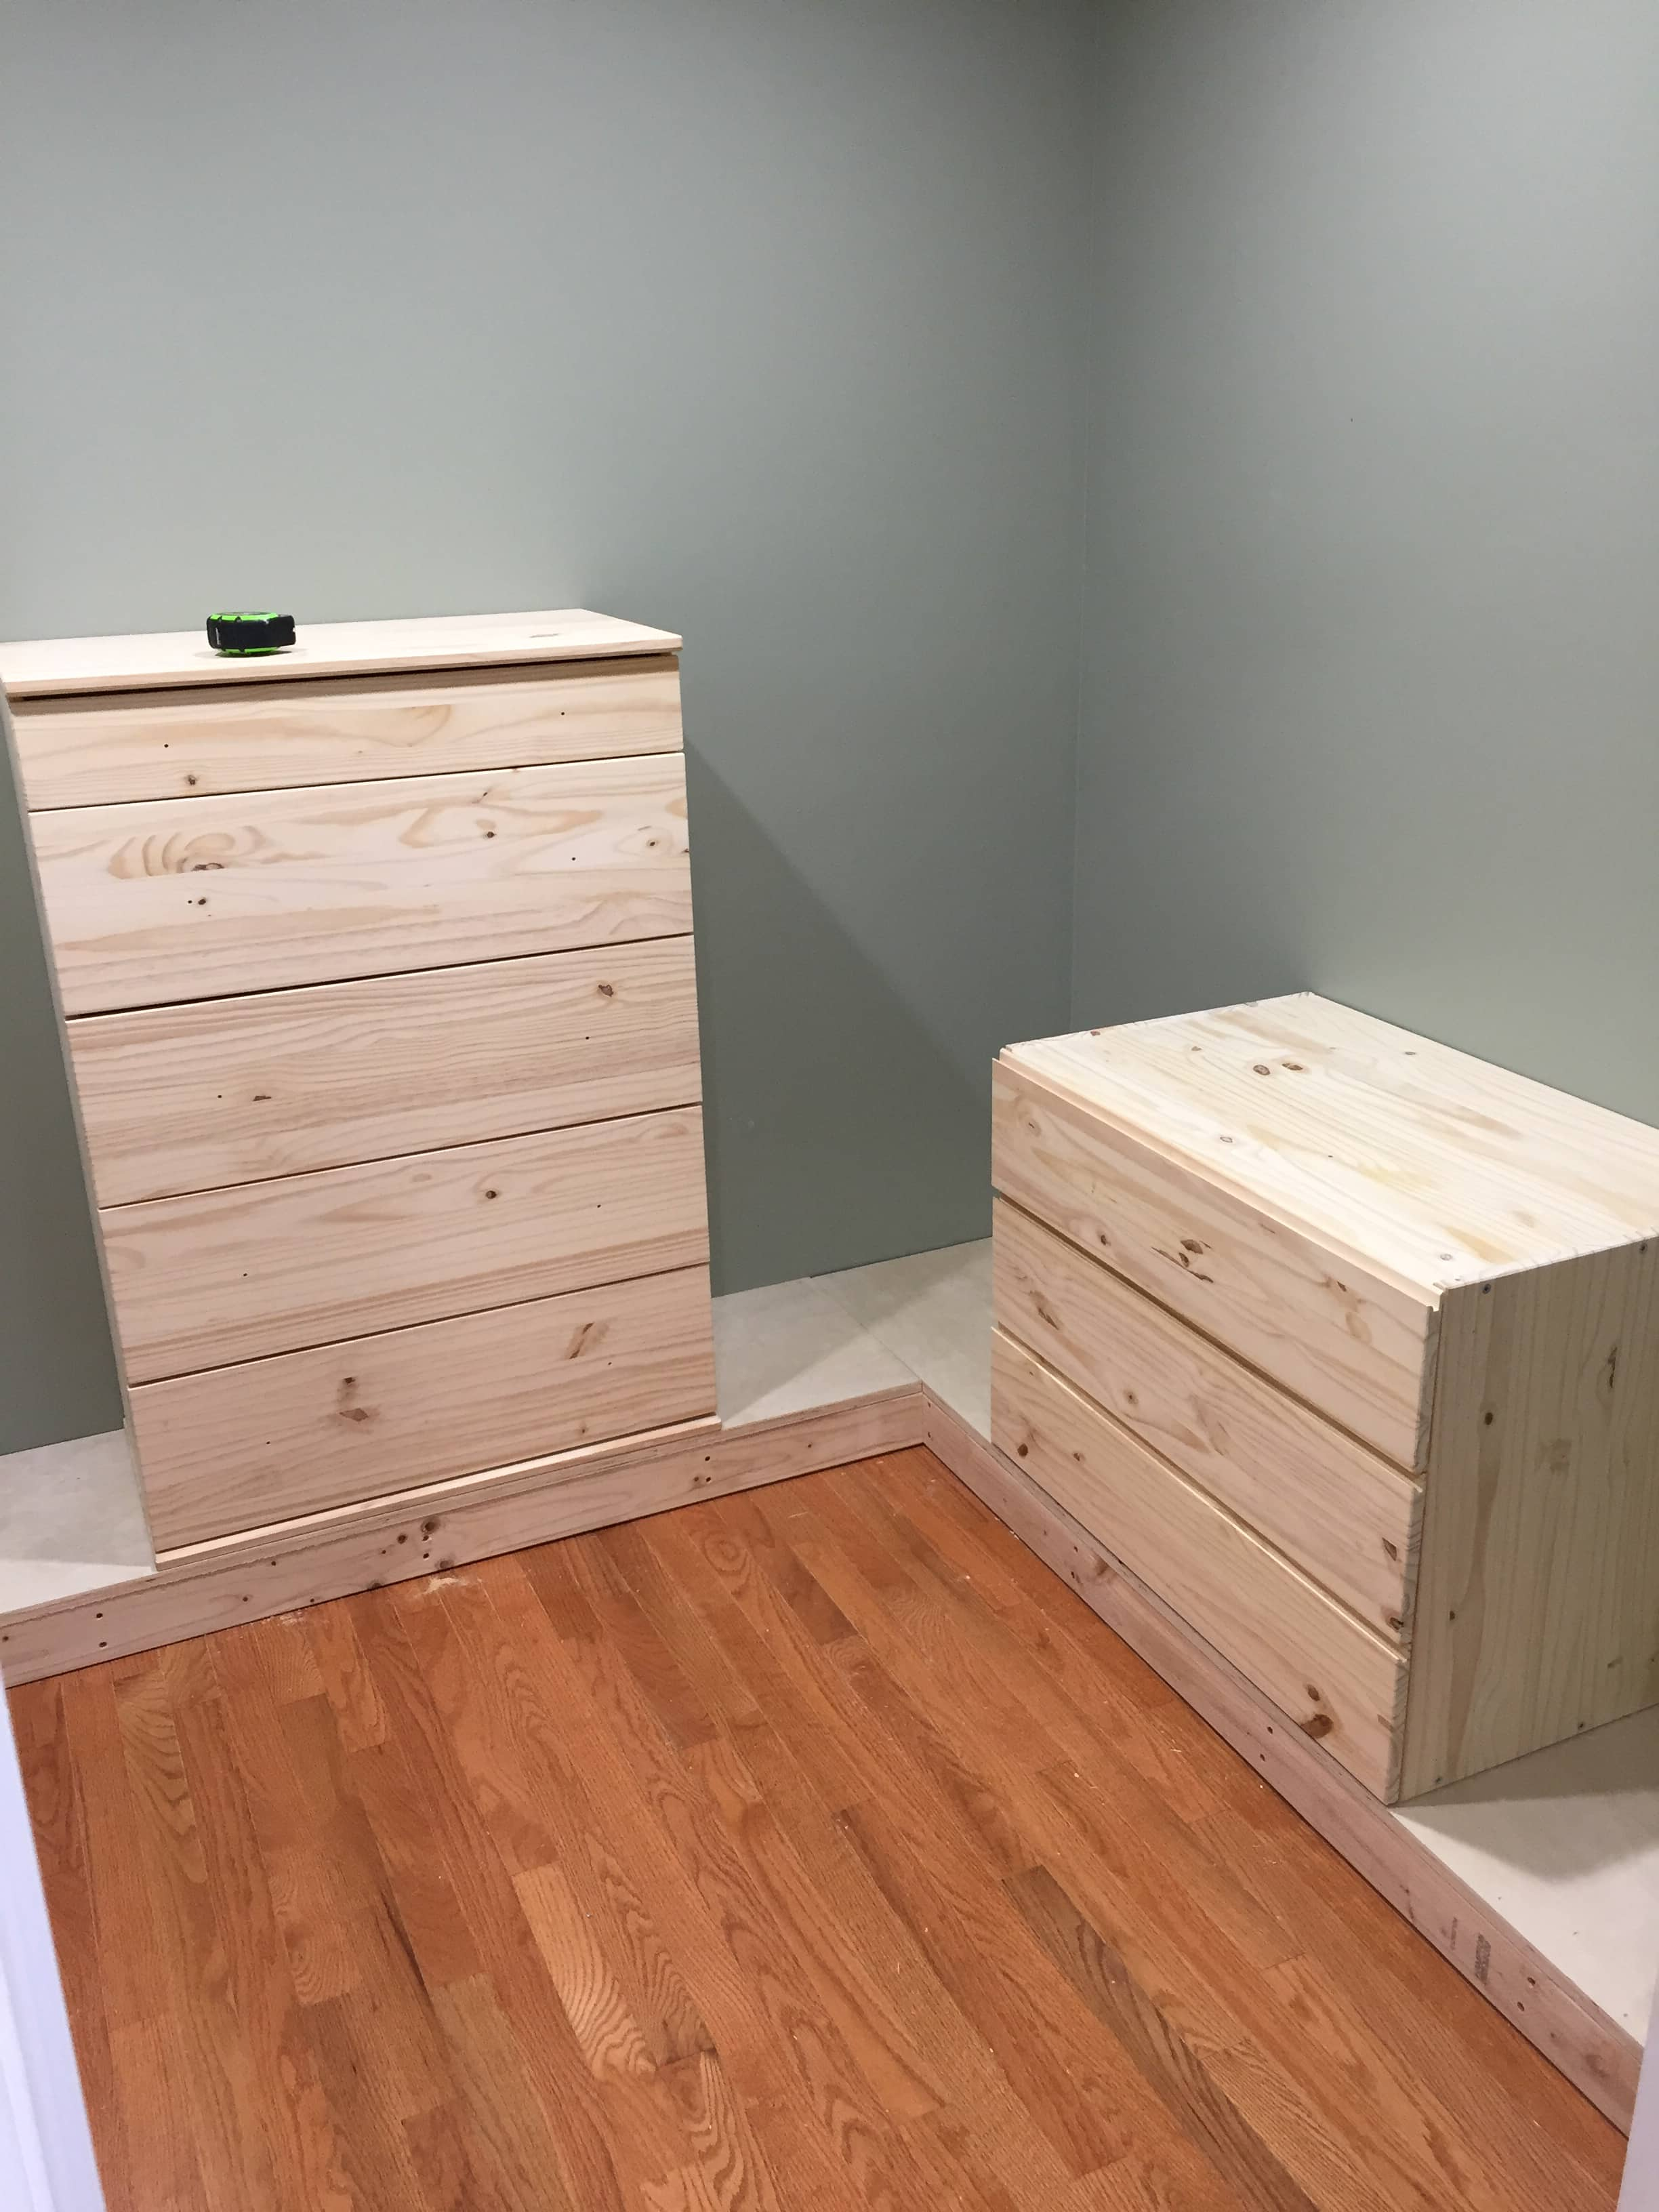 DIY Closet with ikea dresser